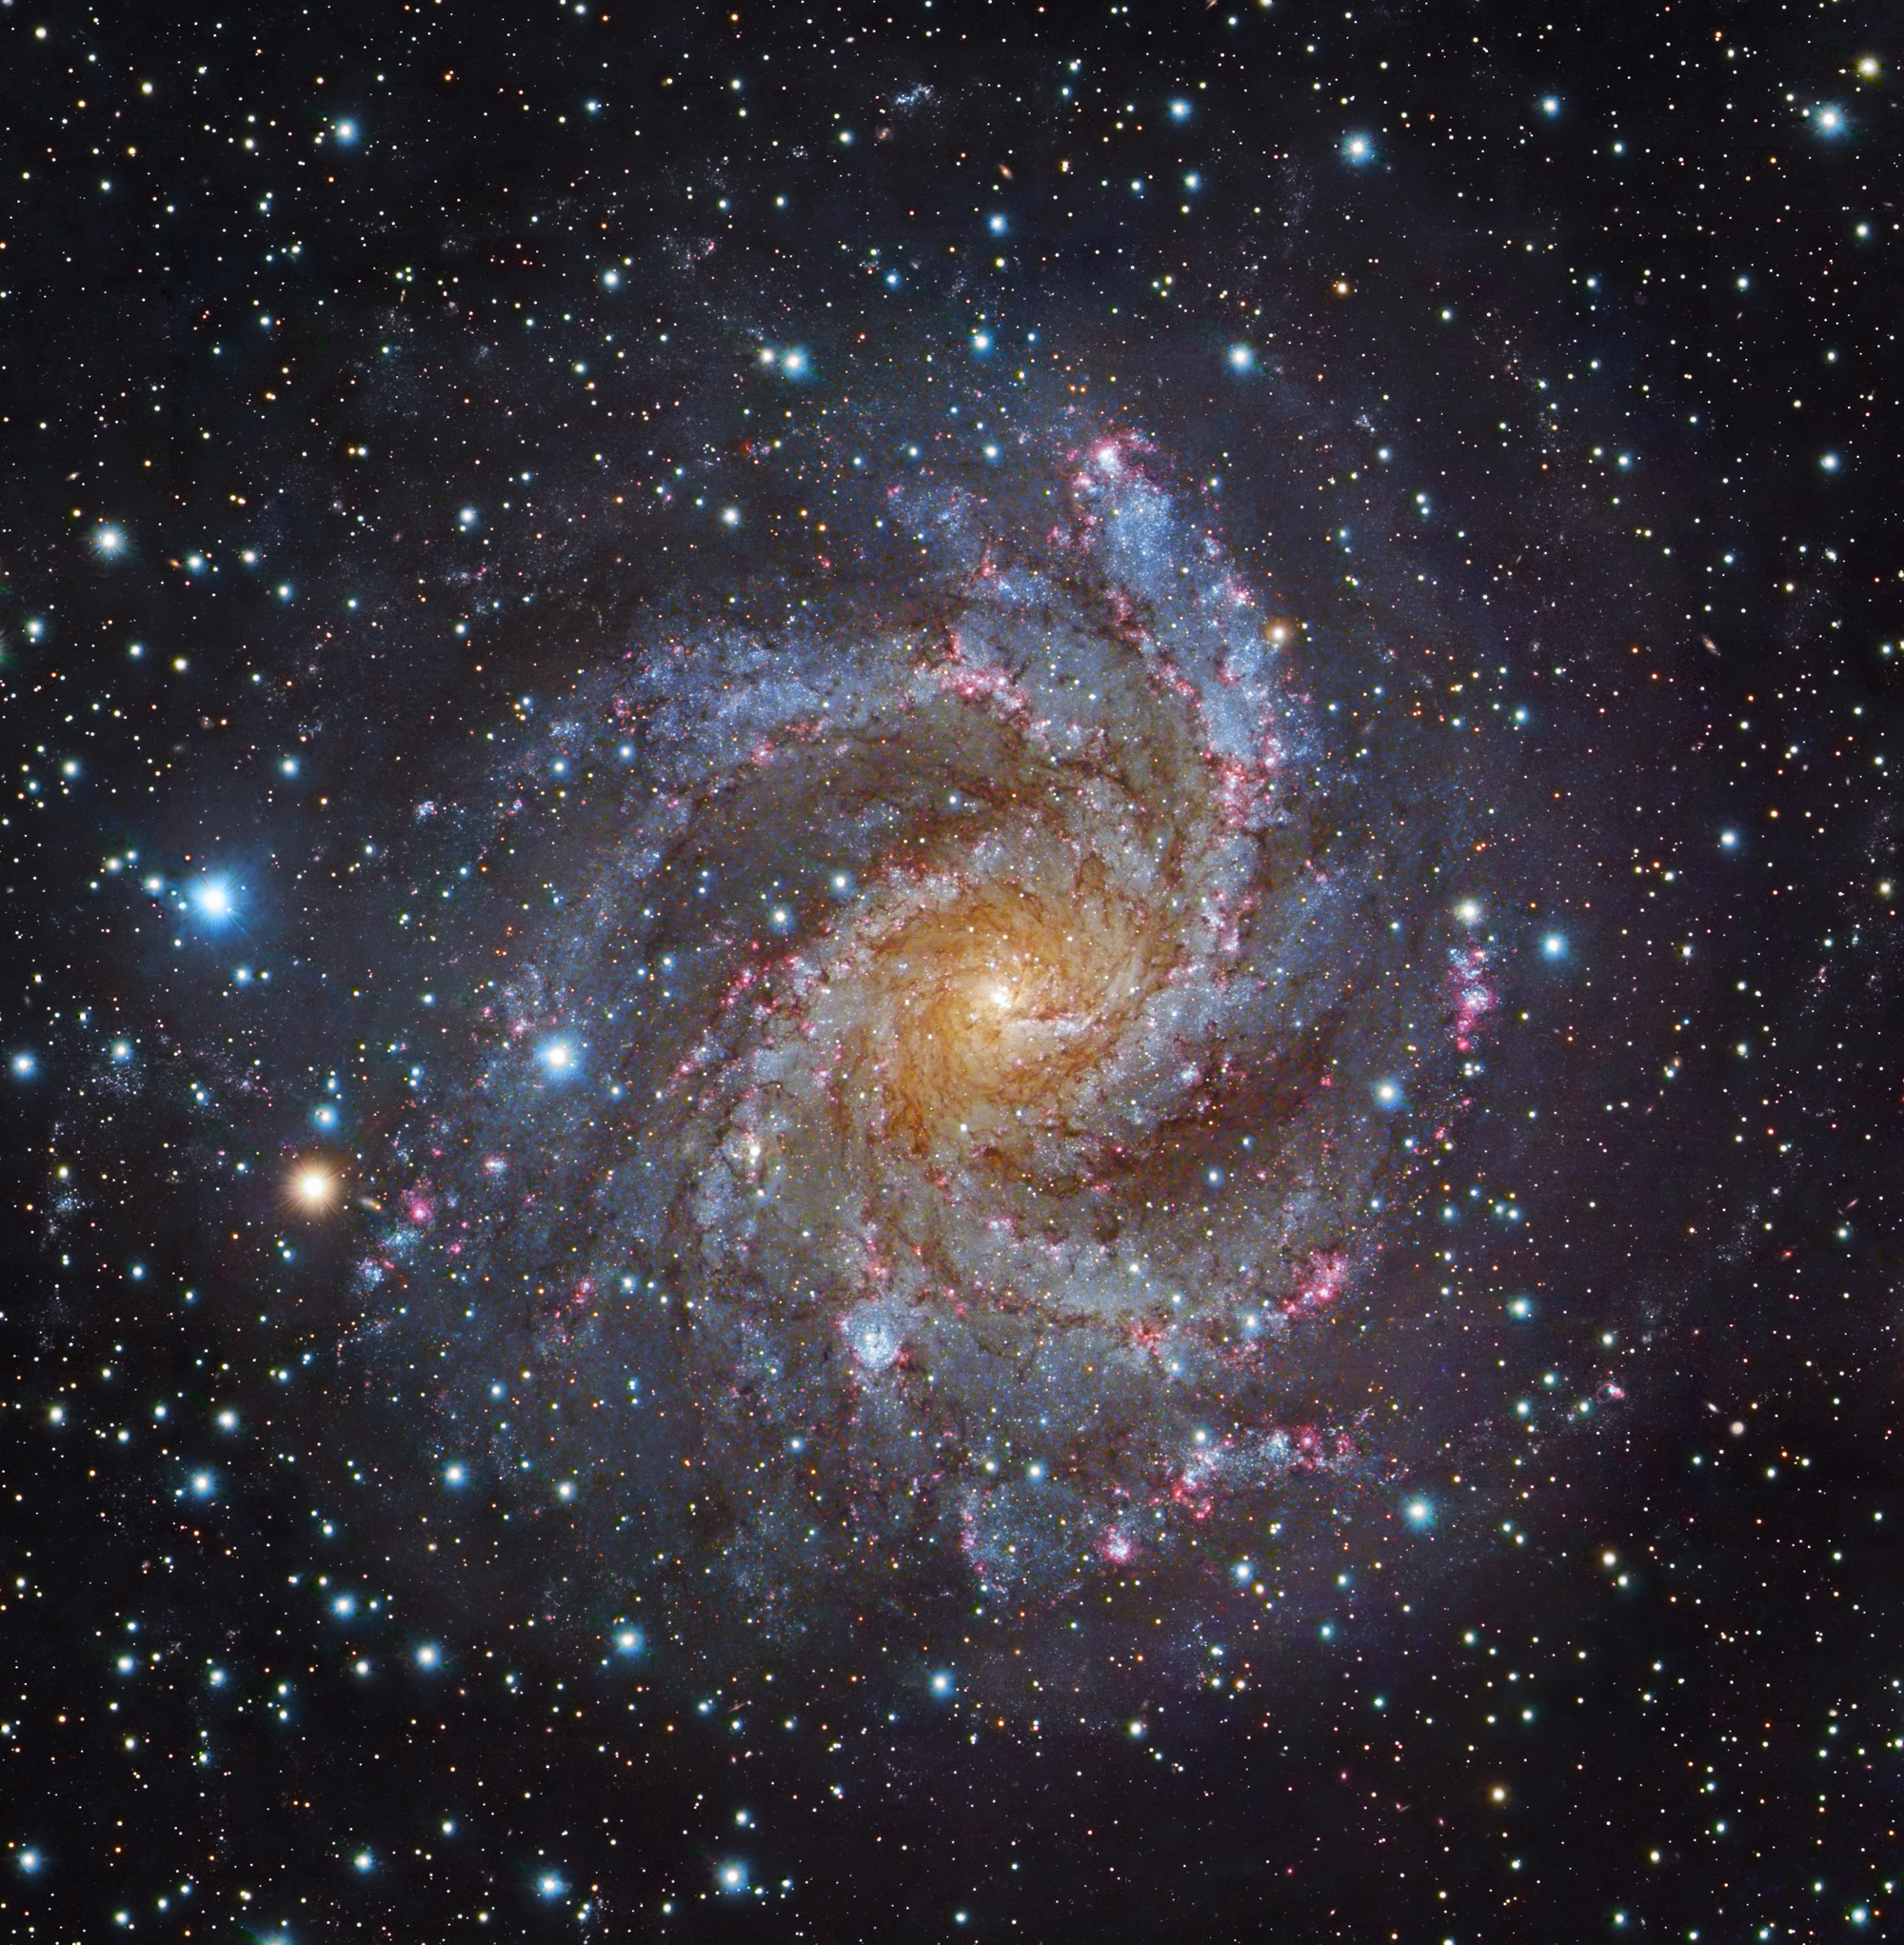 Apod 2012 january 9 facing ngc 6946 for Immagini galassie hd